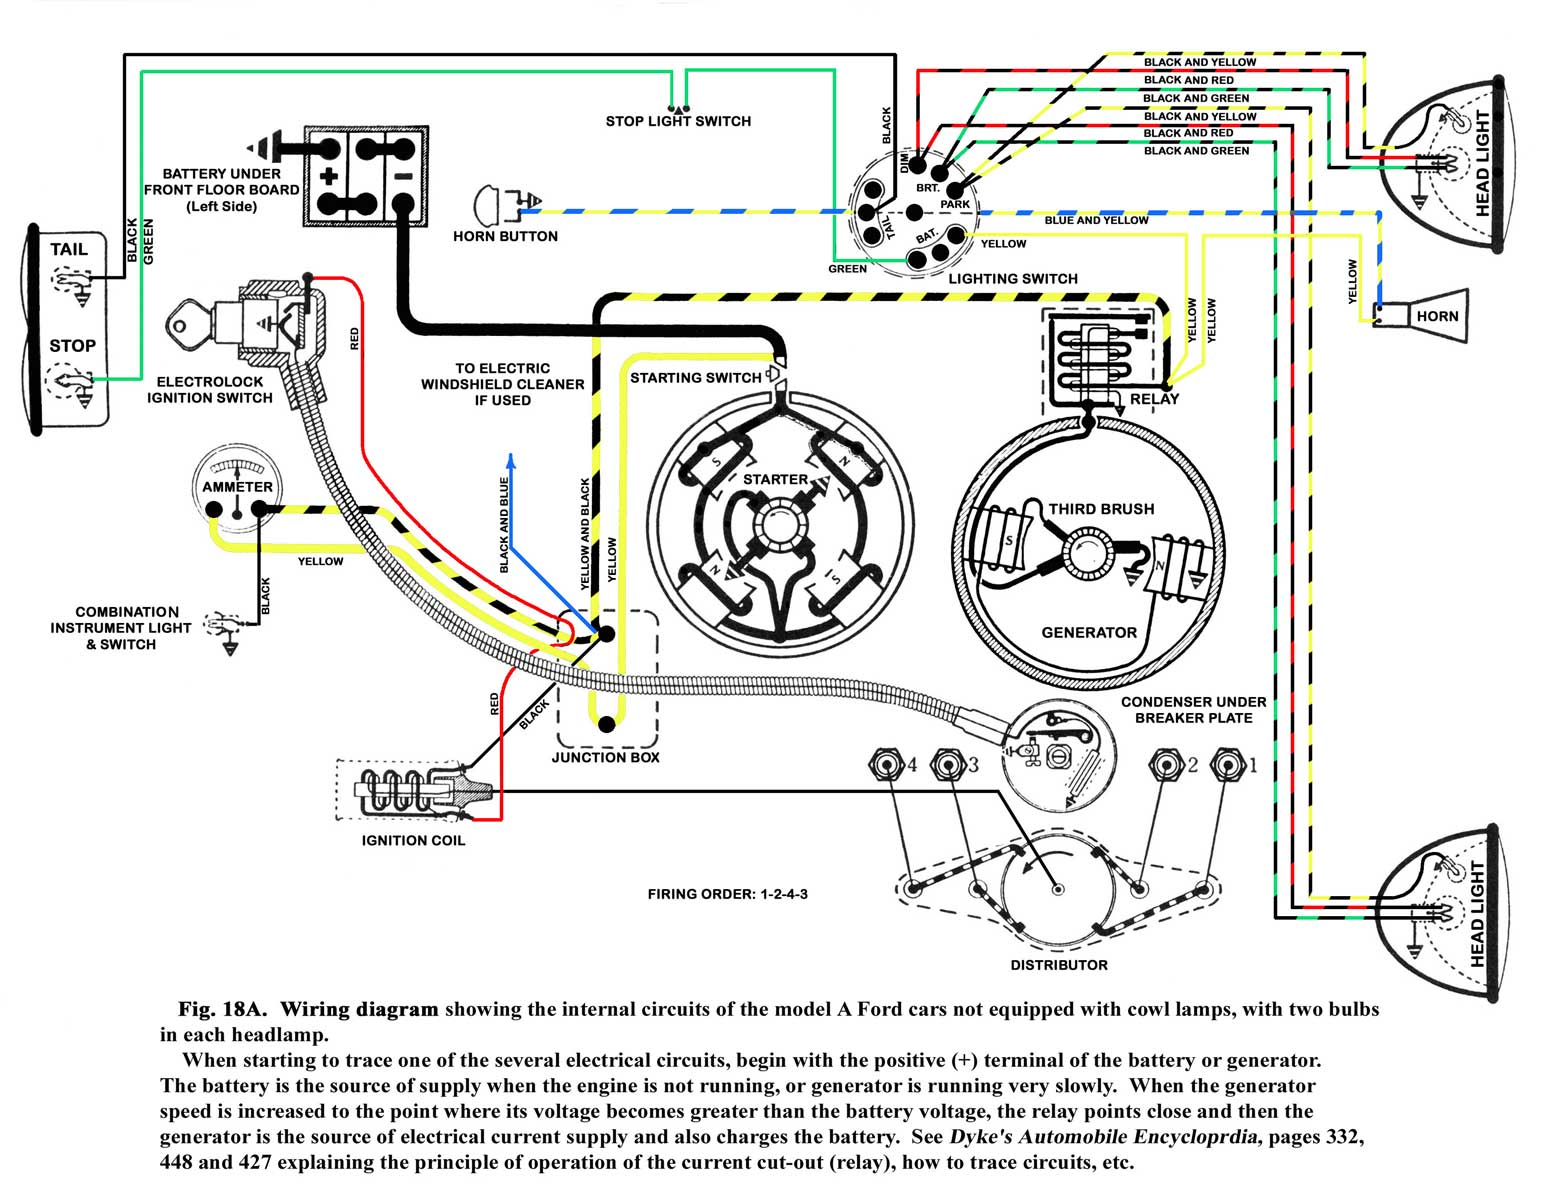 ford wiring harness diagrams wiring diagram detailed ford explorer wiring harness diagram ford wiring harness diagrams [ 1546 x 1195 Pixel ]